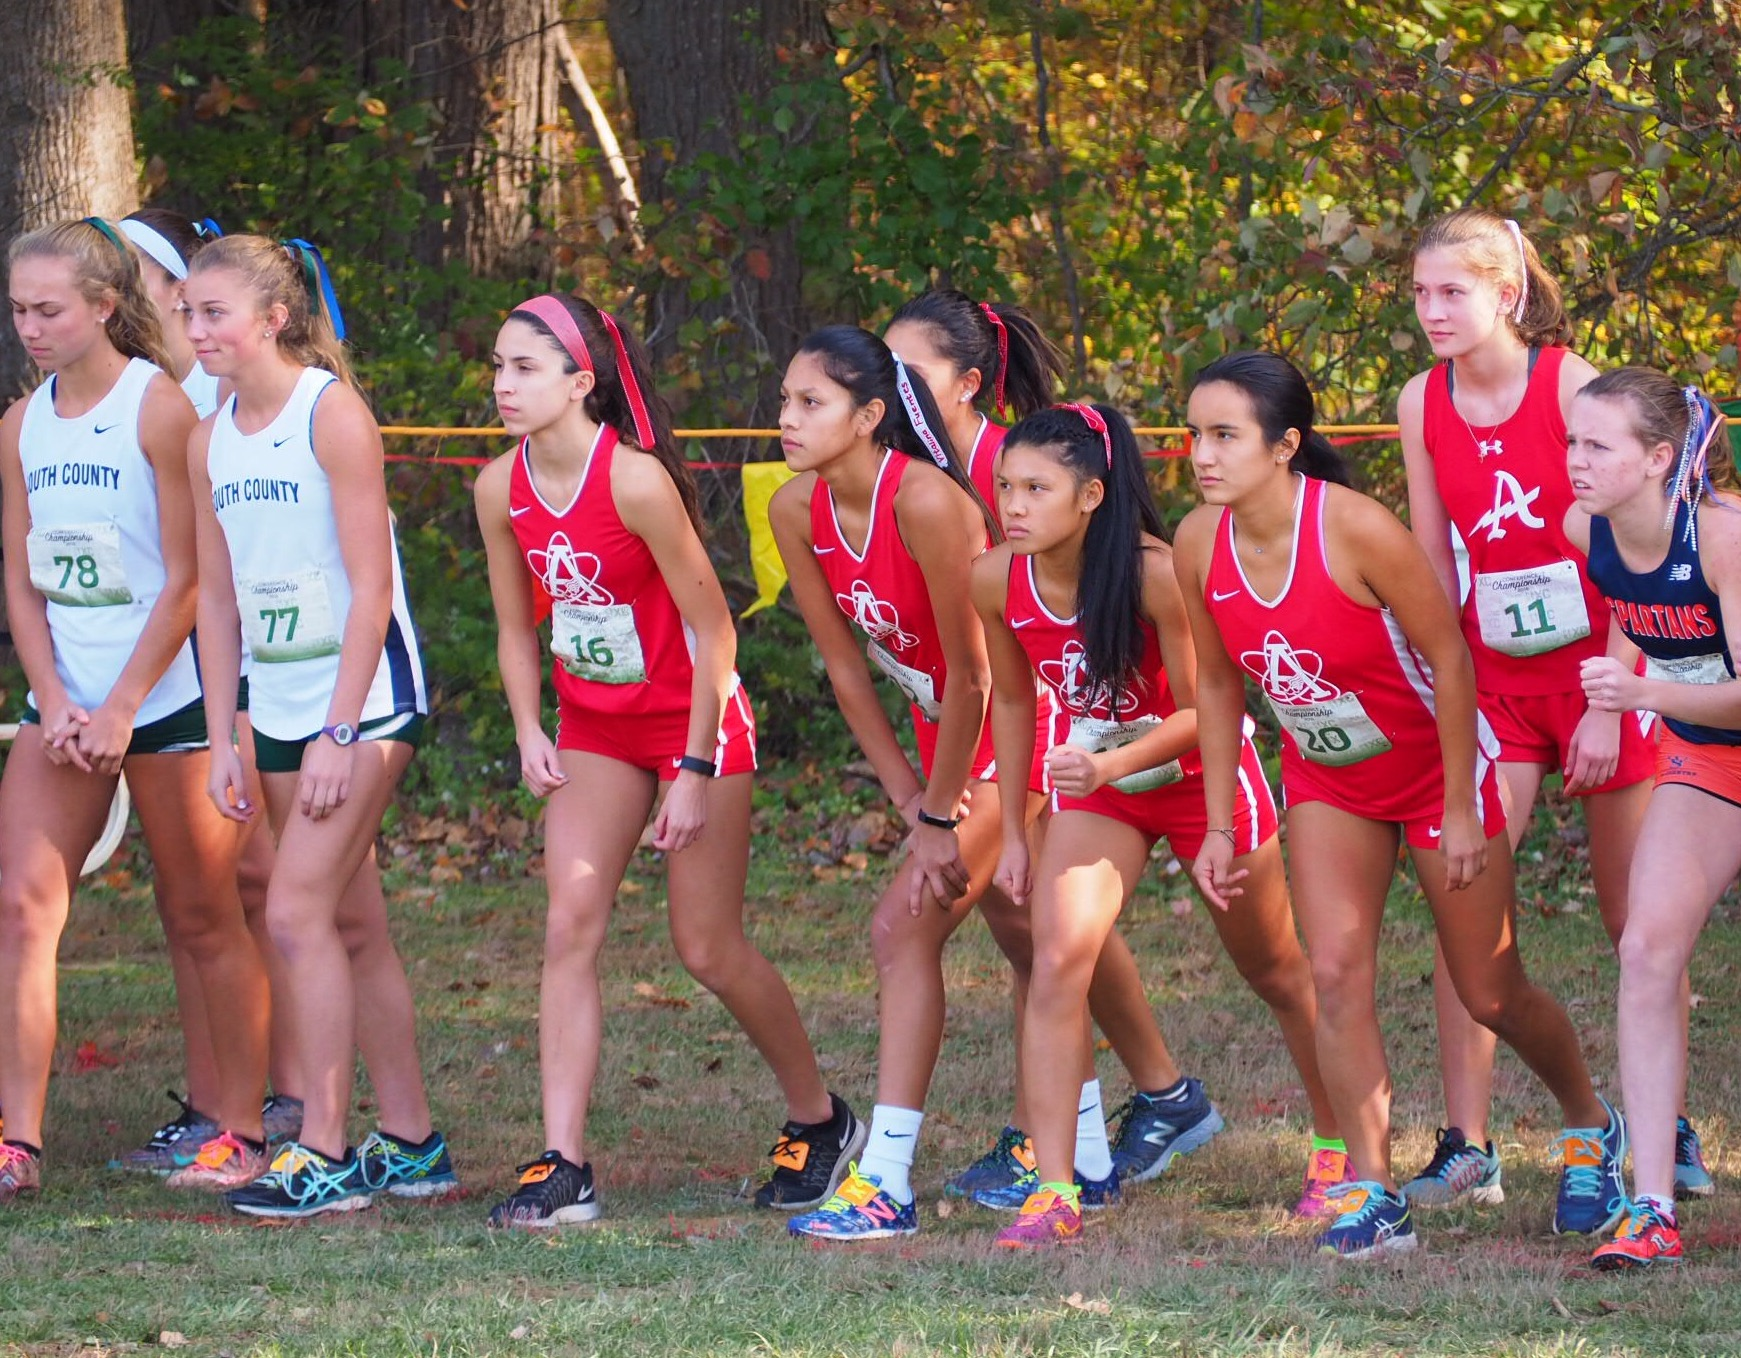 The girls cross country team lines up at the starting line at the Patriot Conference Championship Meet on Oct. 26.